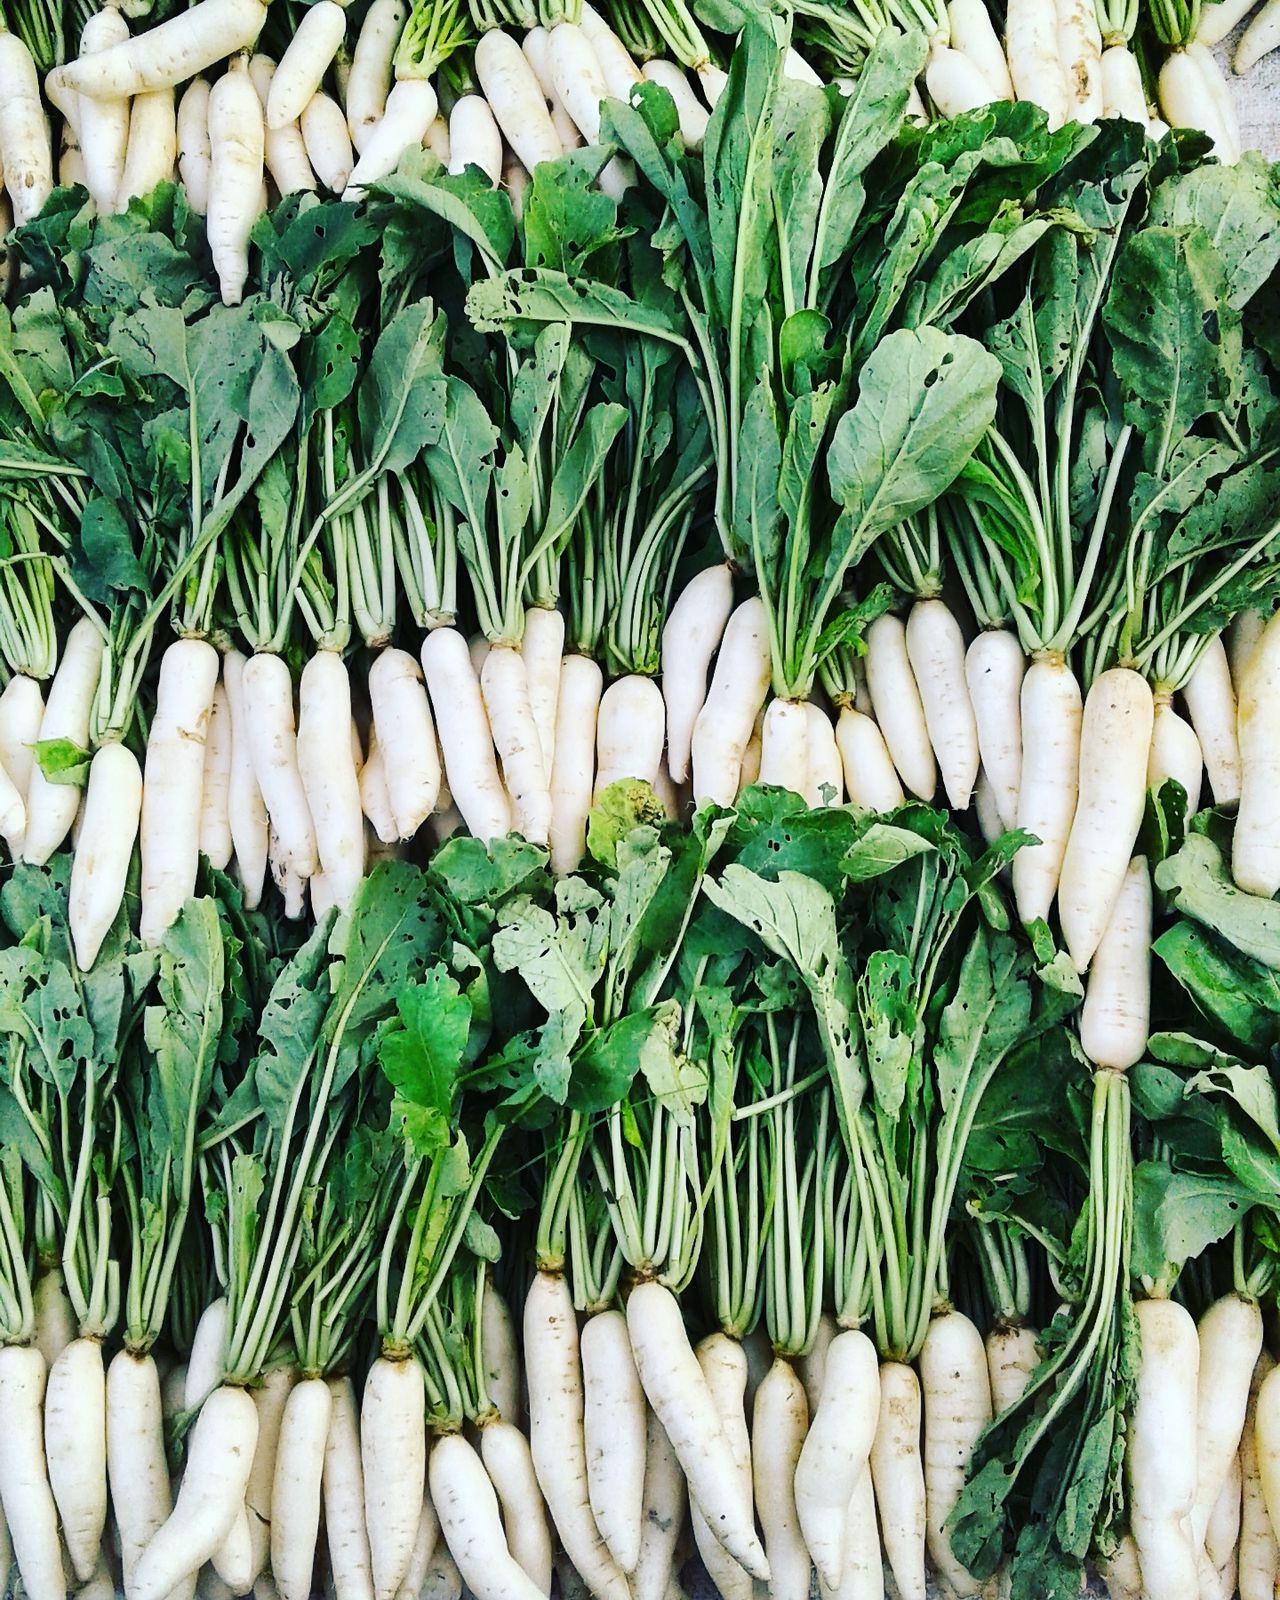 White Radish In Market Linear Perspective Algorithm Make Your Frame Vegetable Images